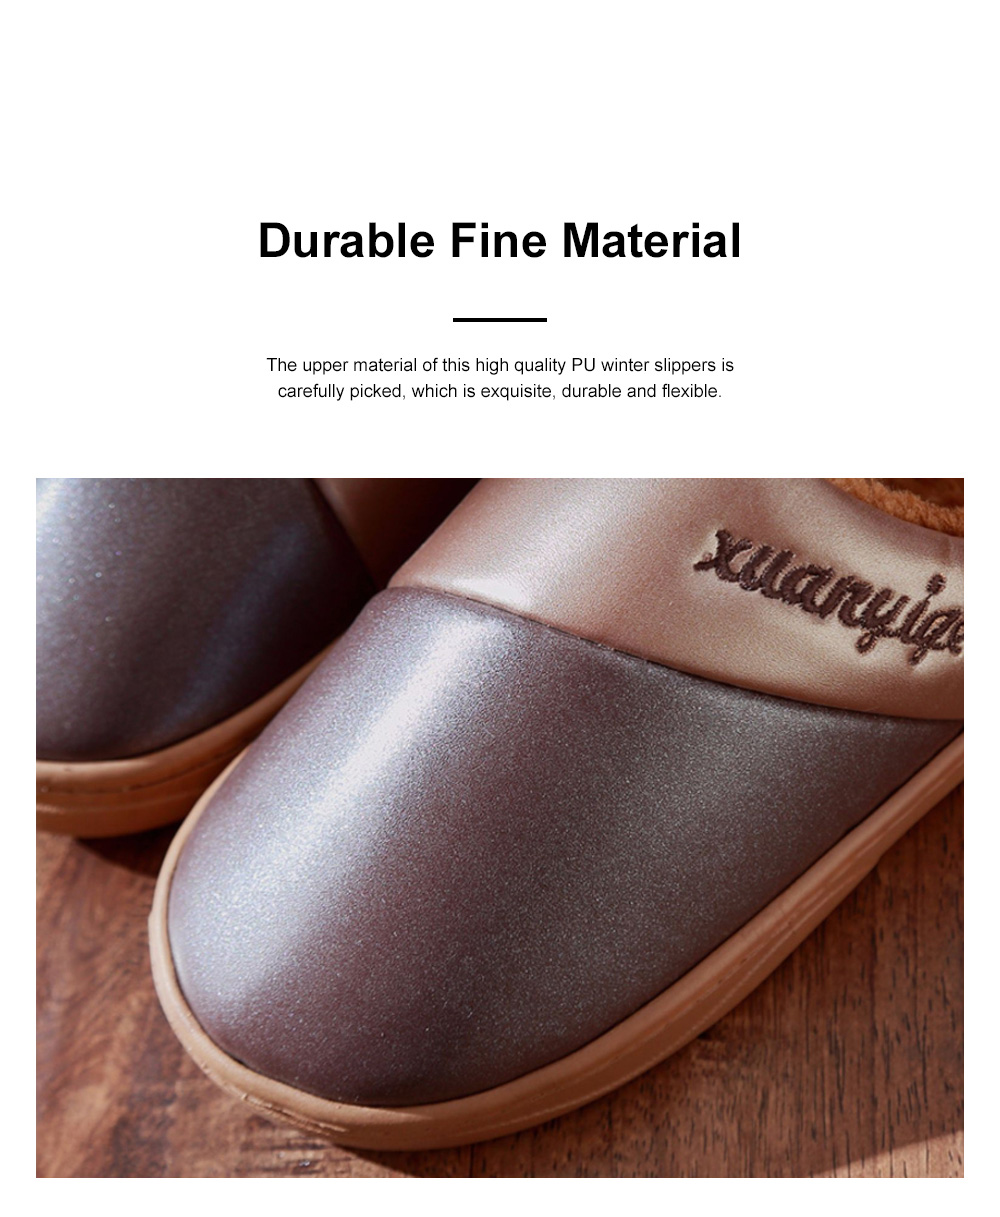 New Style Indoor PU Material Winter Slippers For Couples Home-used Warm Household Cute Water-proof & Skid-proof Slippers 3